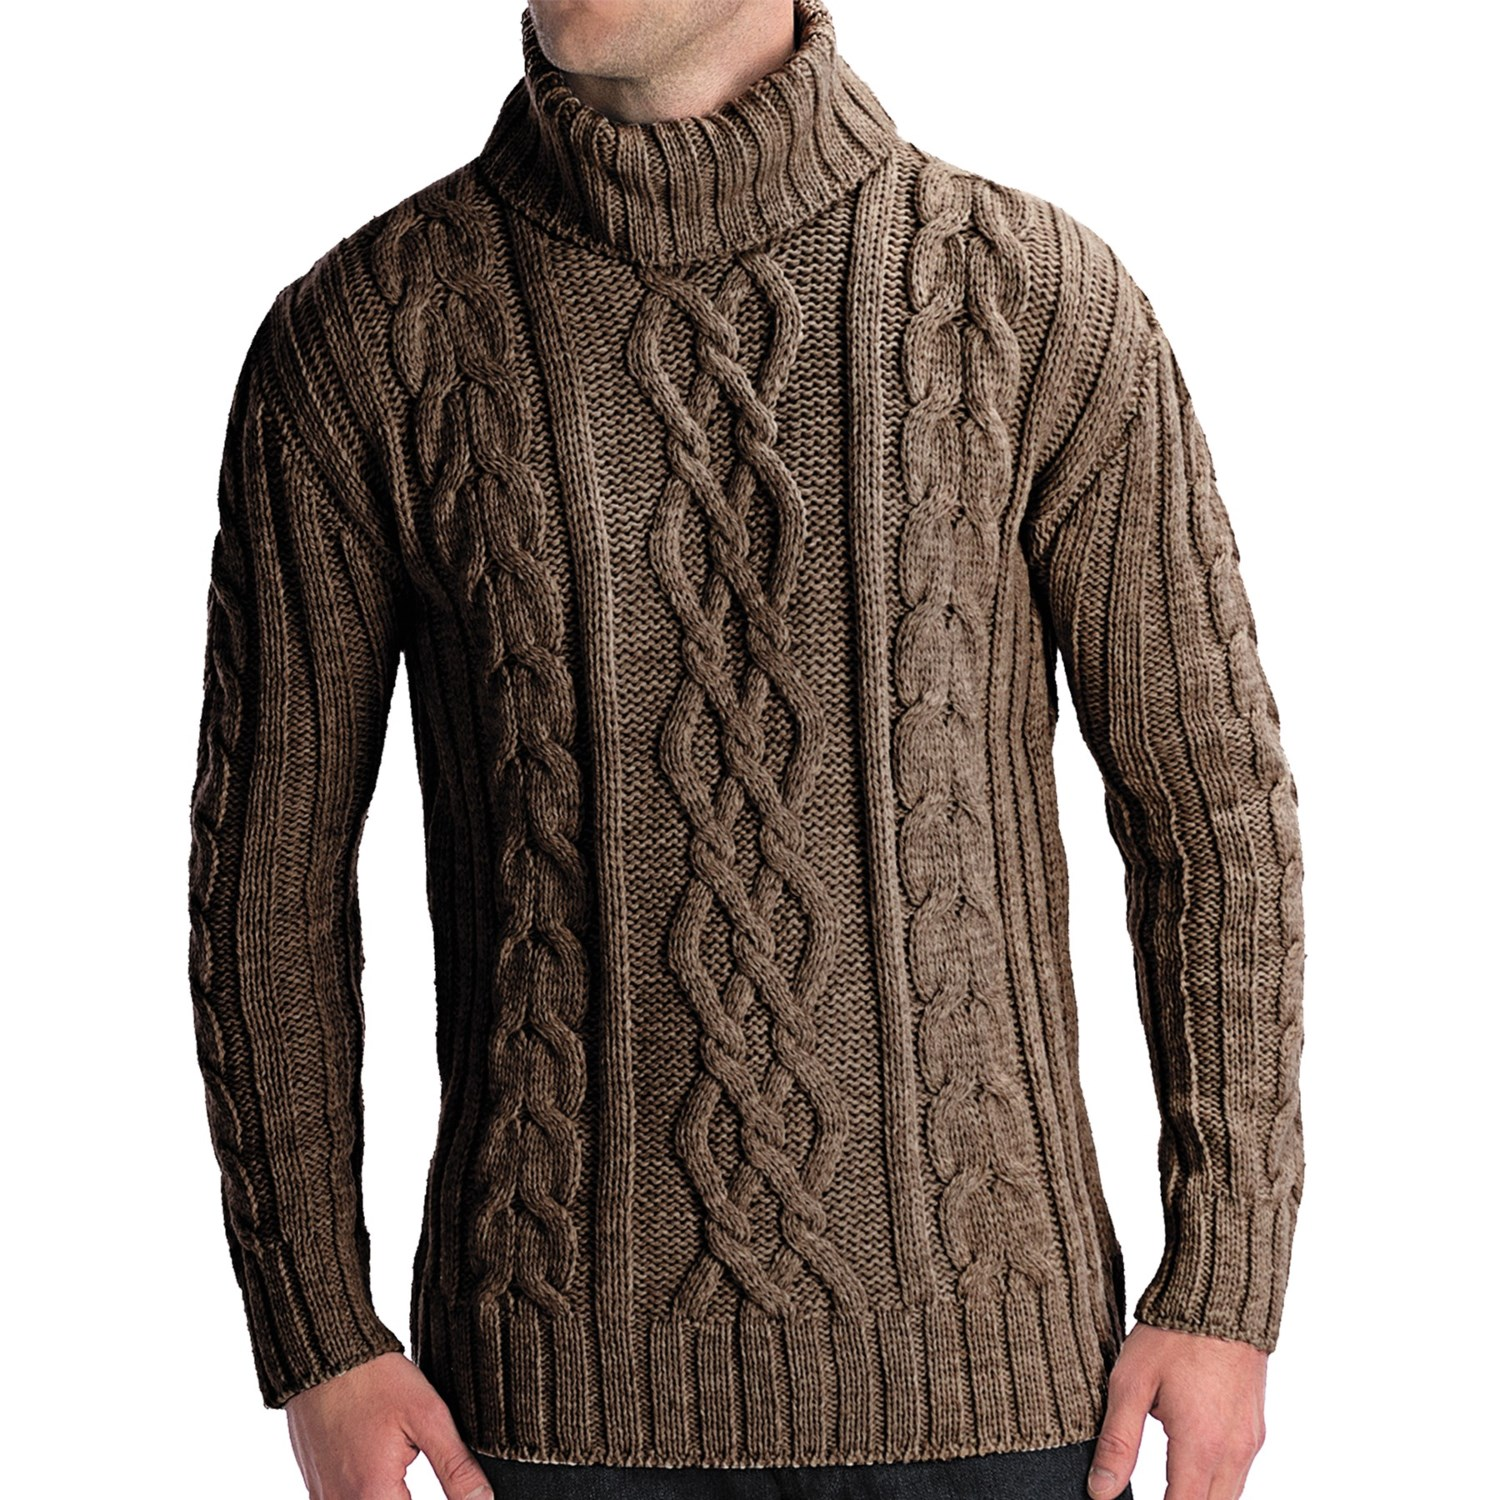 Women's Sweaters and Women's Wool Sweaters from nazhatie-skachat.gq At nazhatie-skachat.gq, we believe all weather is sweater weather, so we offer an extensive selection for every season and every style. From cable knit wool sweaters to classic women's cardigan sweaters, we have you covered.